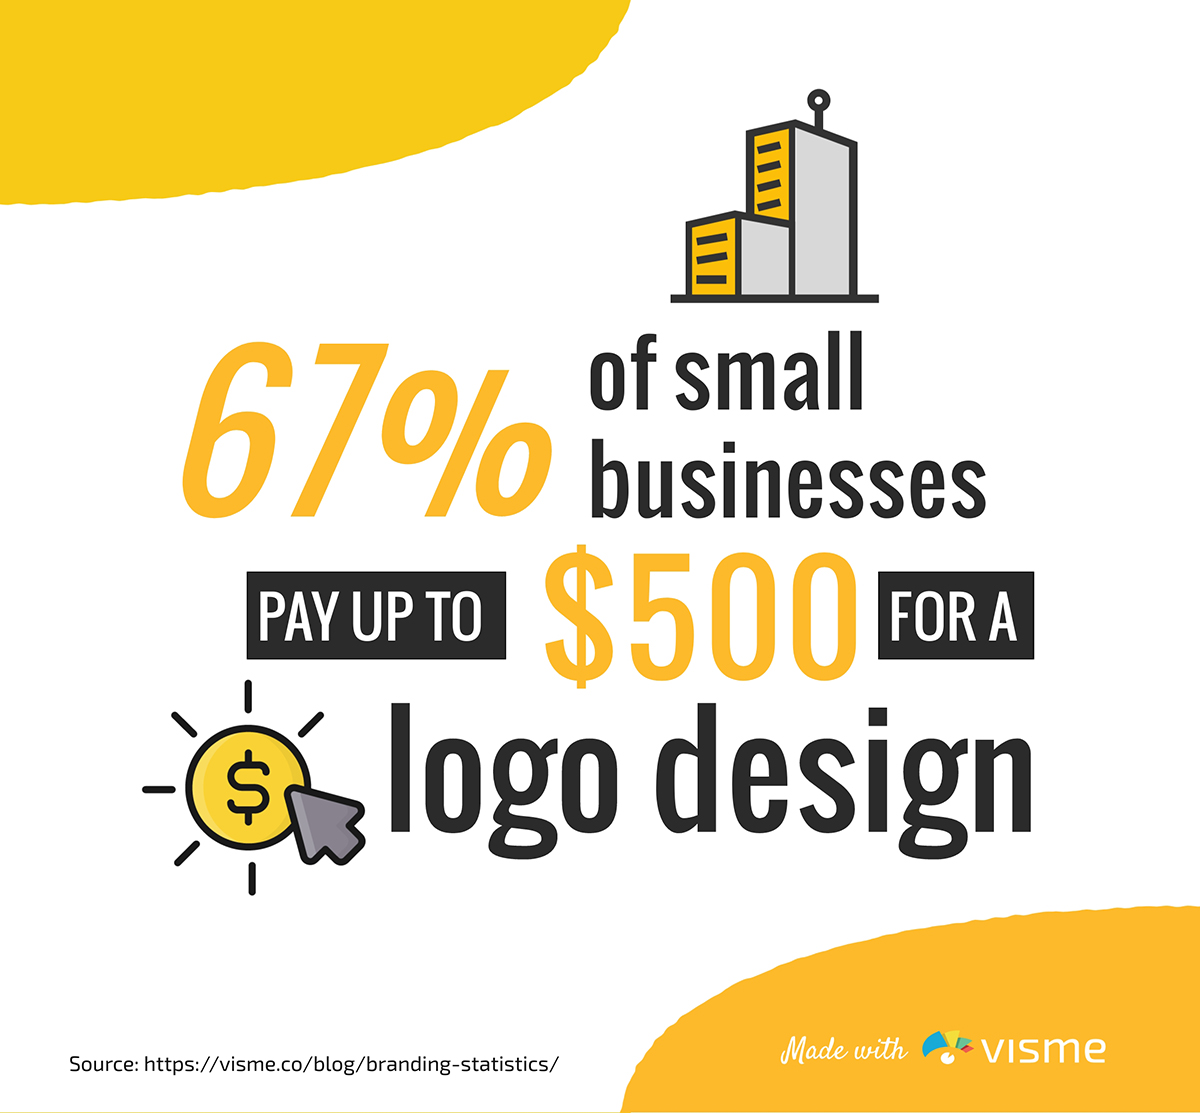 67% of small businesses pay up to $500 for a logo design.